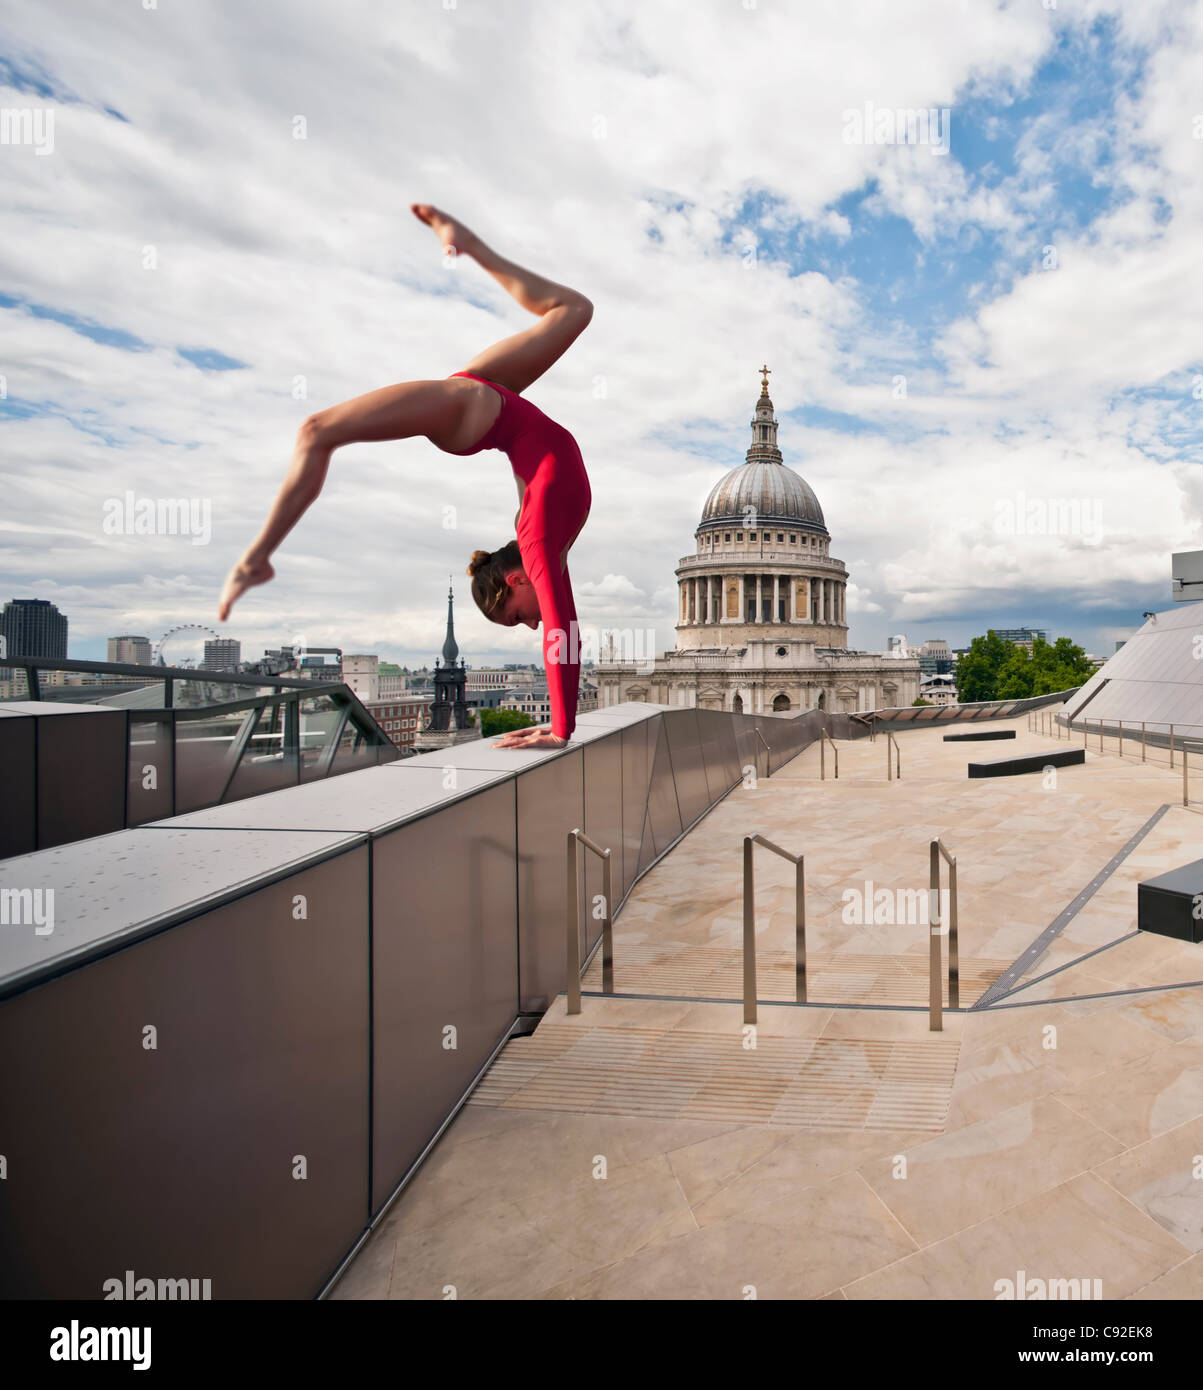 Gymnast on urban rooftop Photo Stock